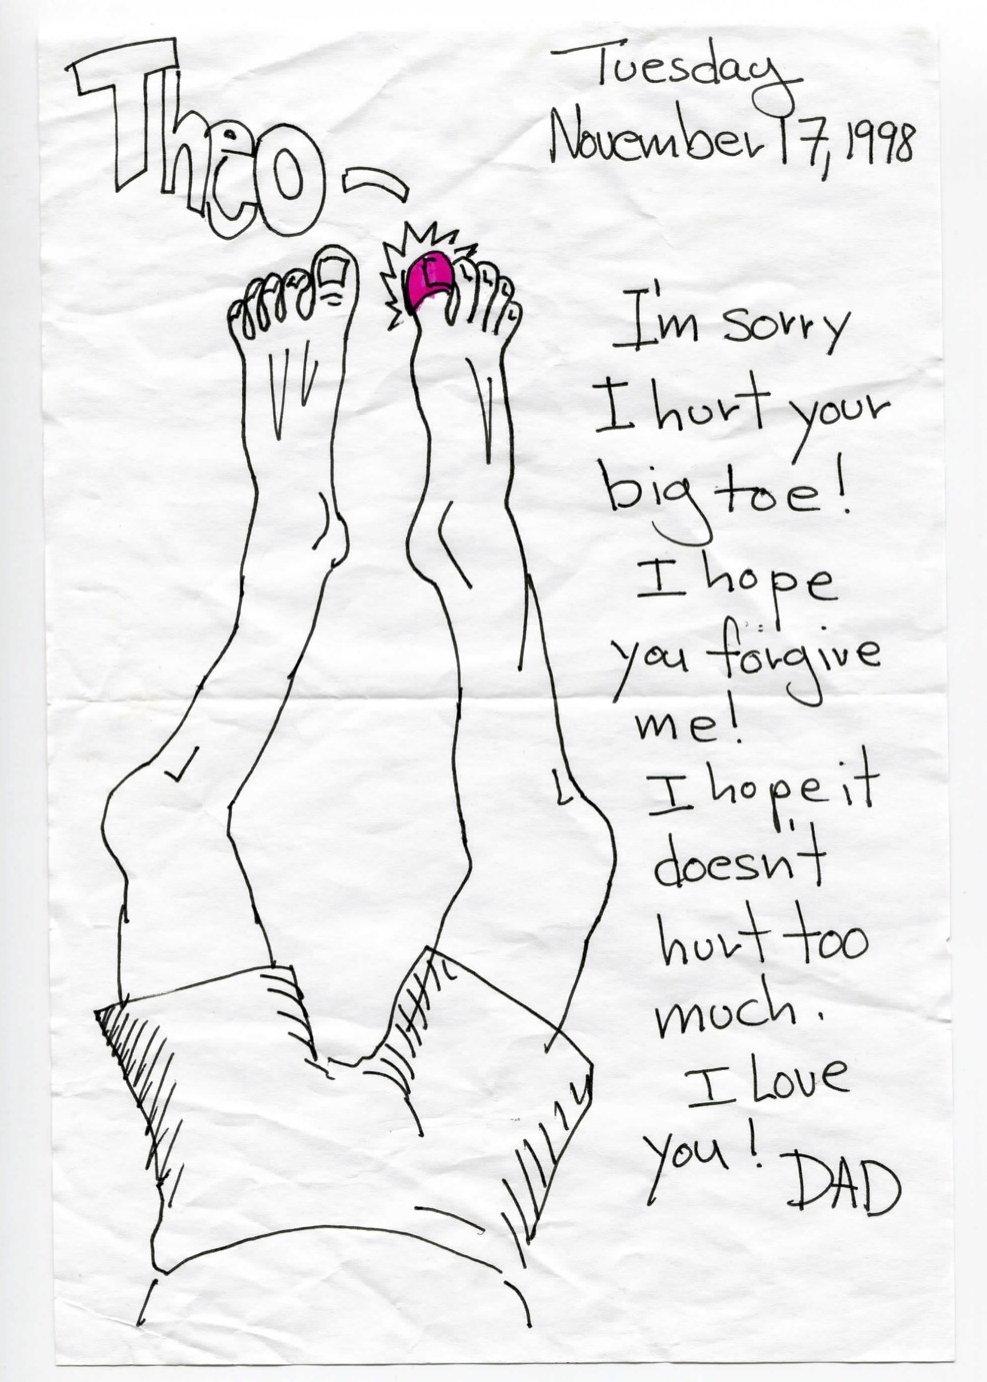 I'm sorry I hurt your big toe! I hope you forgive me! I hope it doesn't hurt too much. I love you!